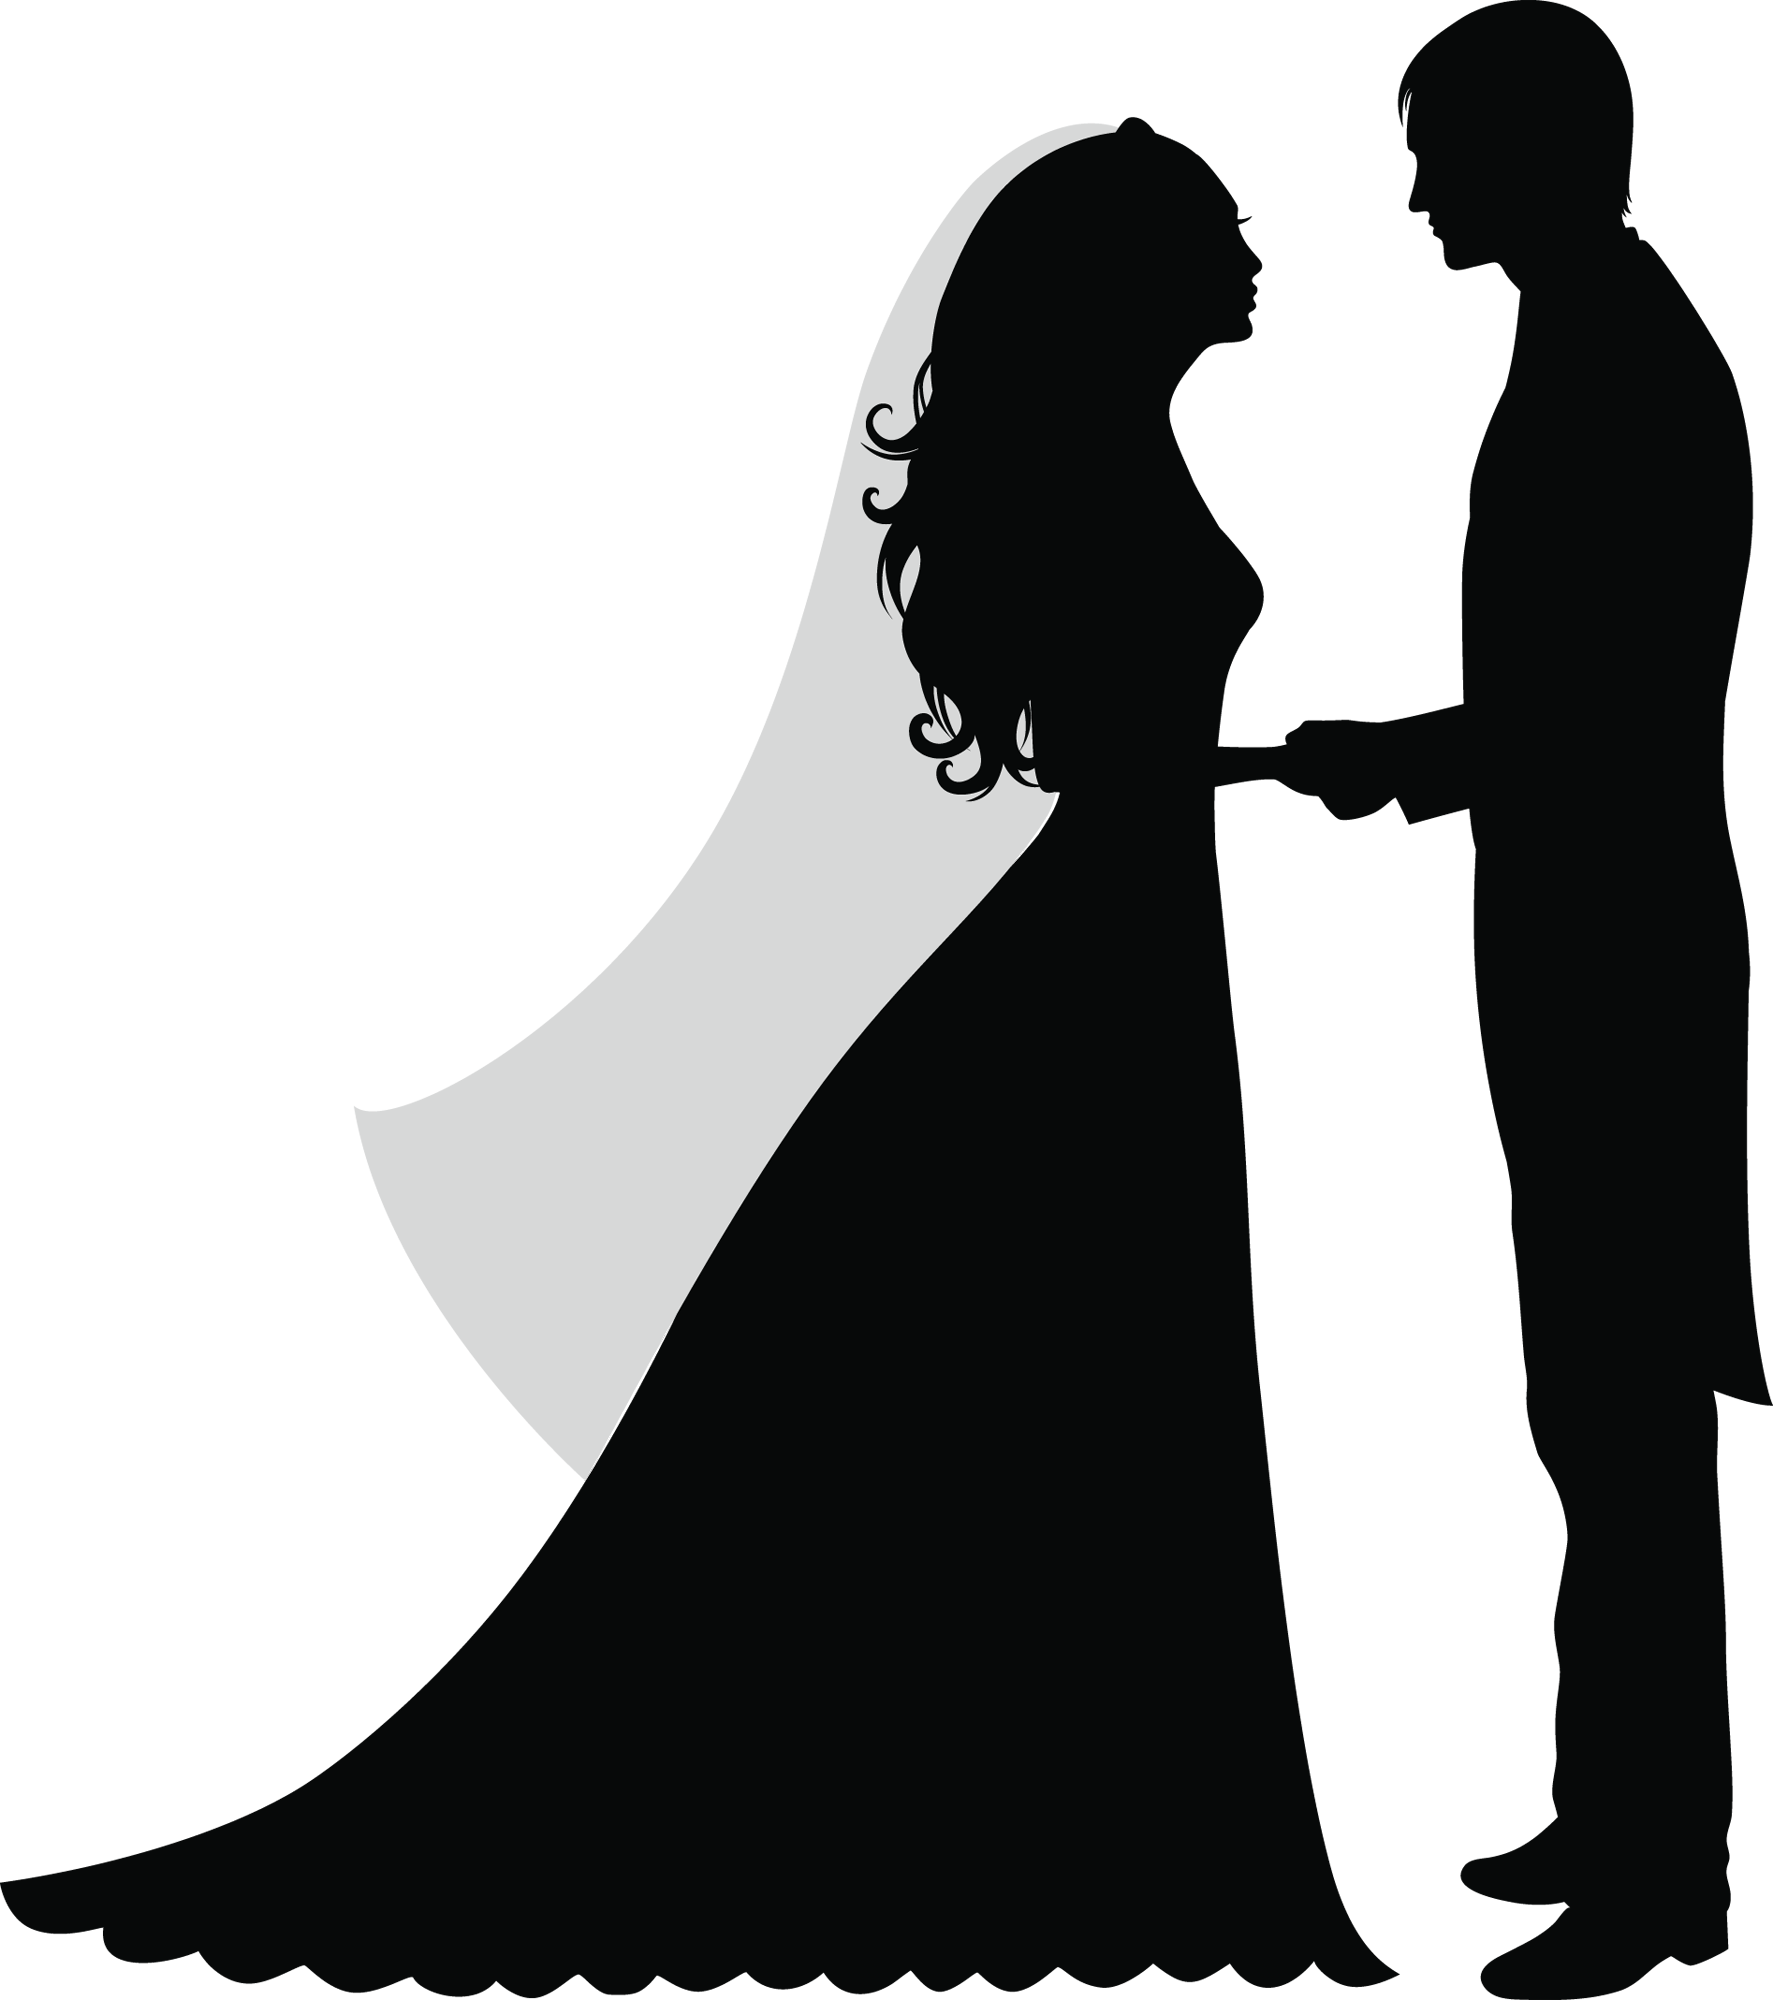 picture transparent download Bridal clipart ballroom dress. Casamento silhouette pinterest stenciling.